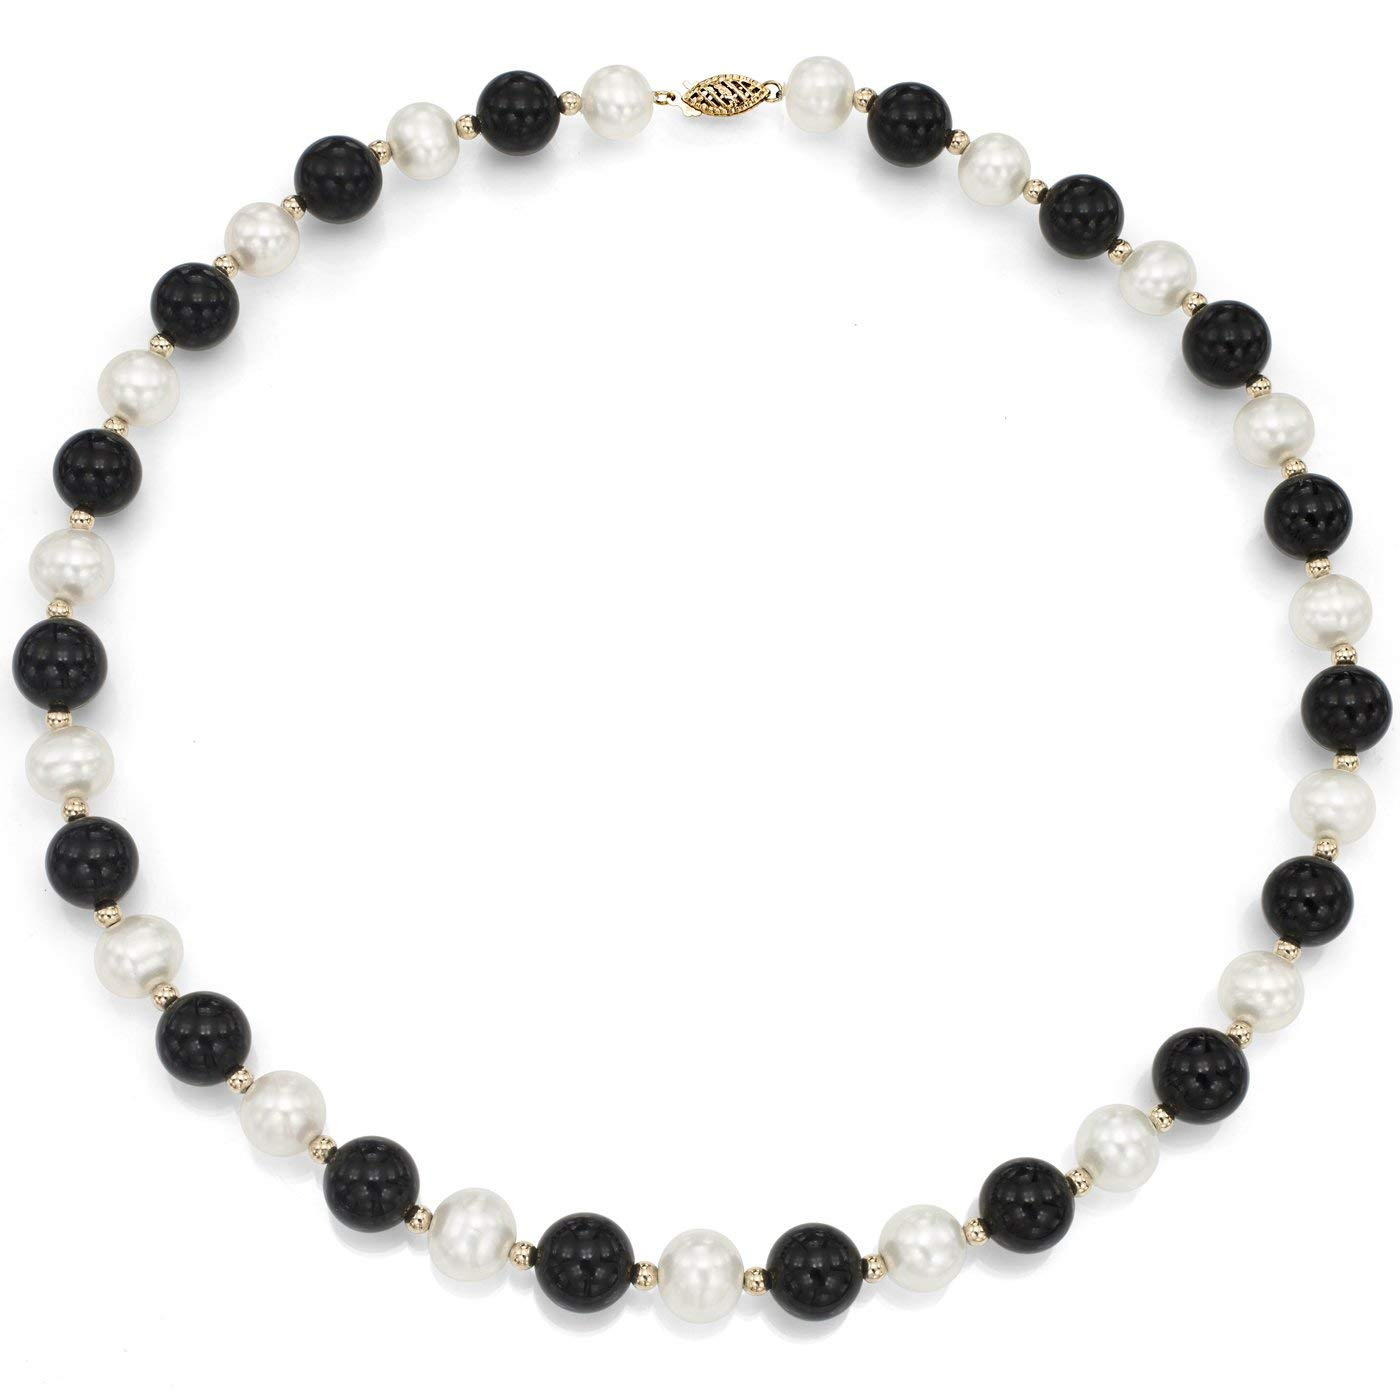 """La Regis Jewelry 14K Yellow Gold 9-9.5mm White Freshwater Cultured Pearl 8mm Simulated Onyx Strand Necklace, 18"""""""